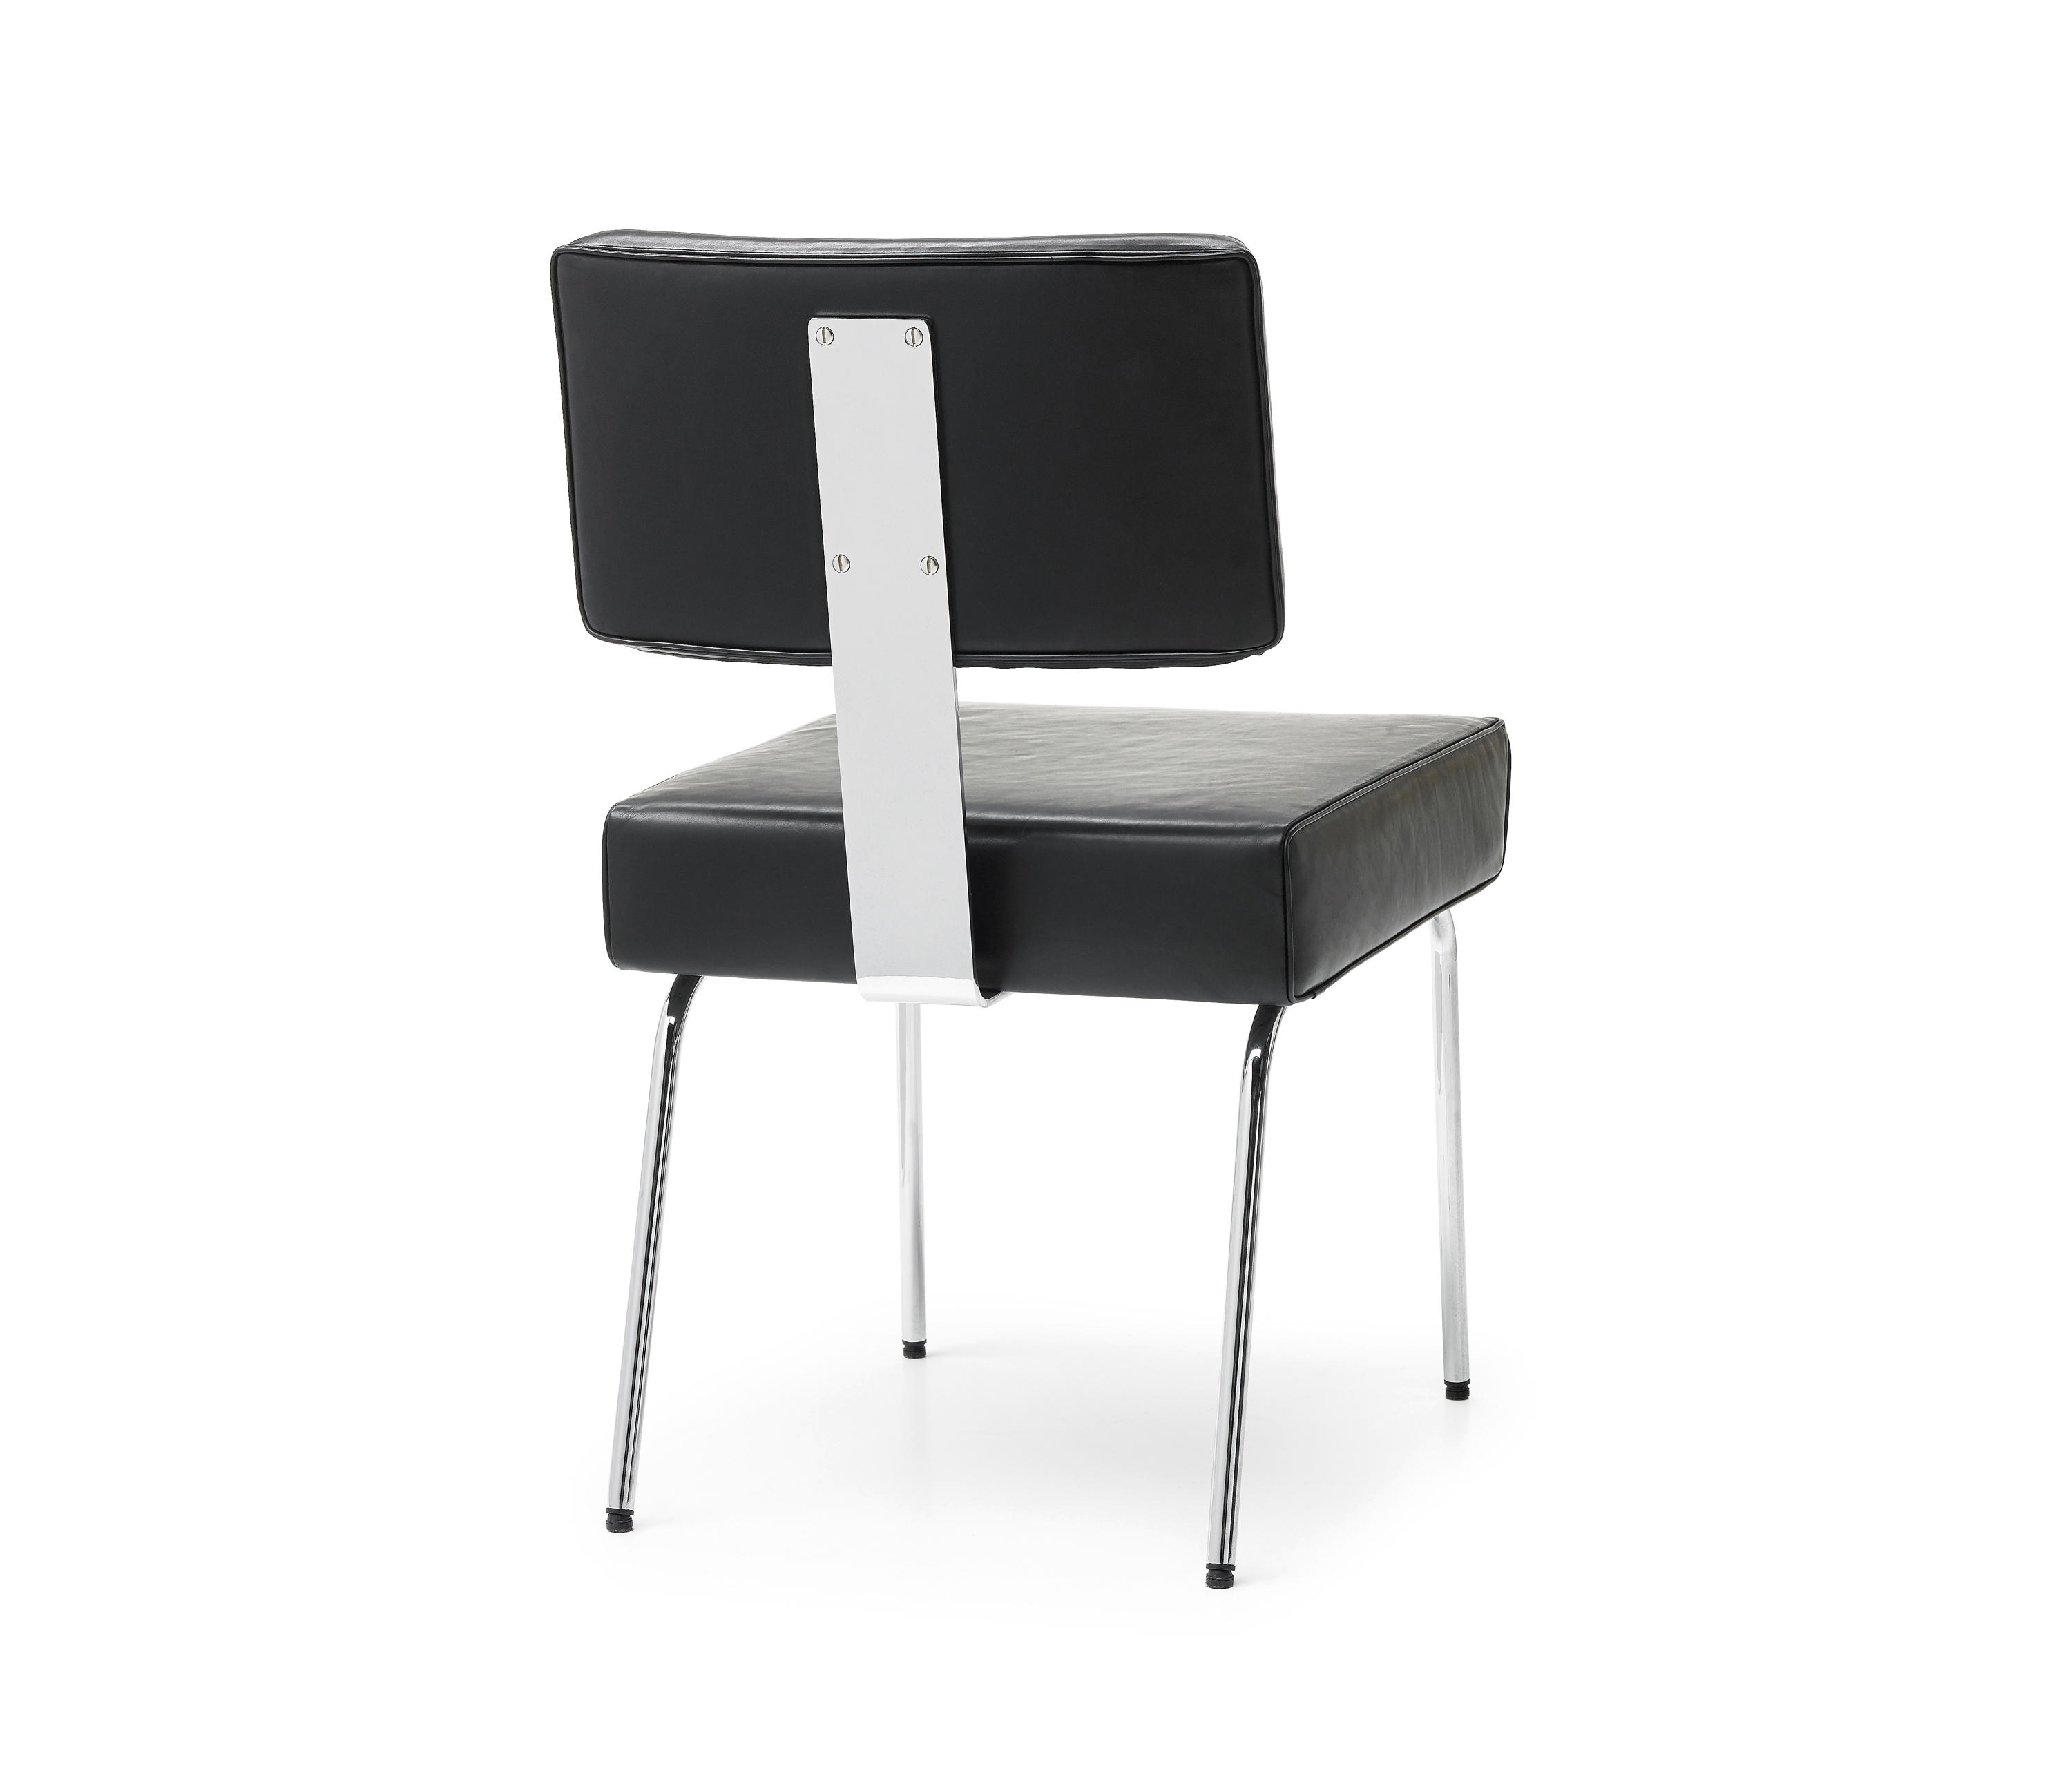 Tremaine side chair steel restaurant chairs from vs for Chair vs chairman